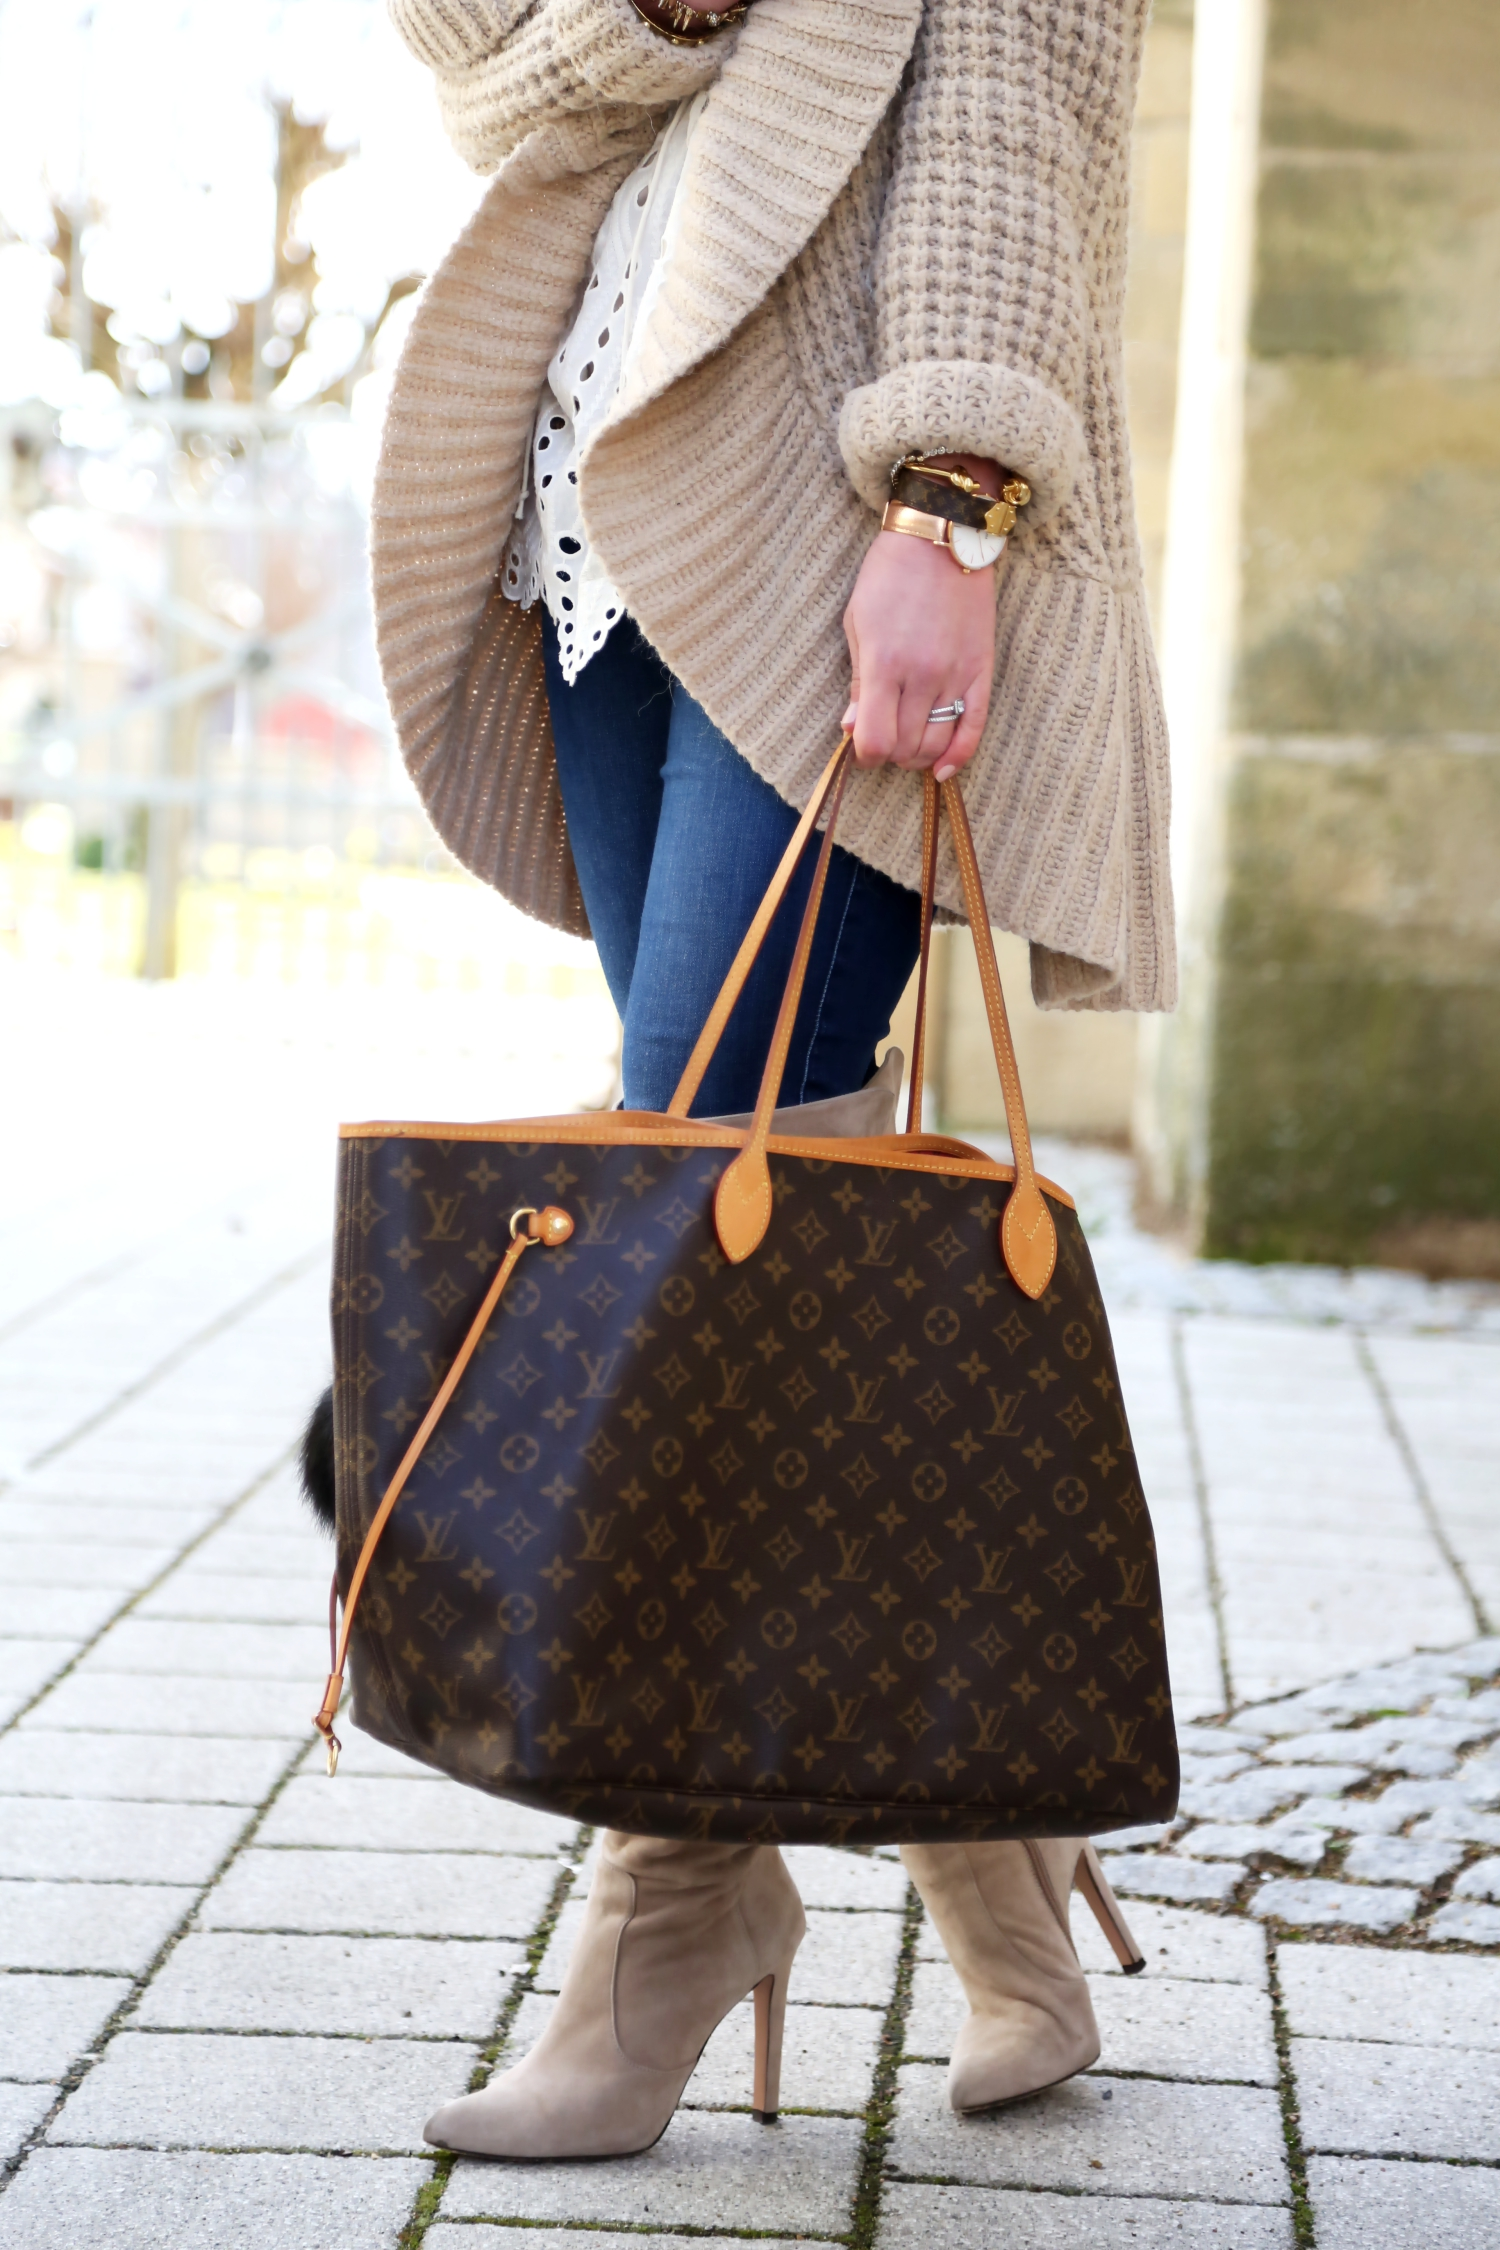 outfit-details-louis-vuitton-bag-cardigan-wool